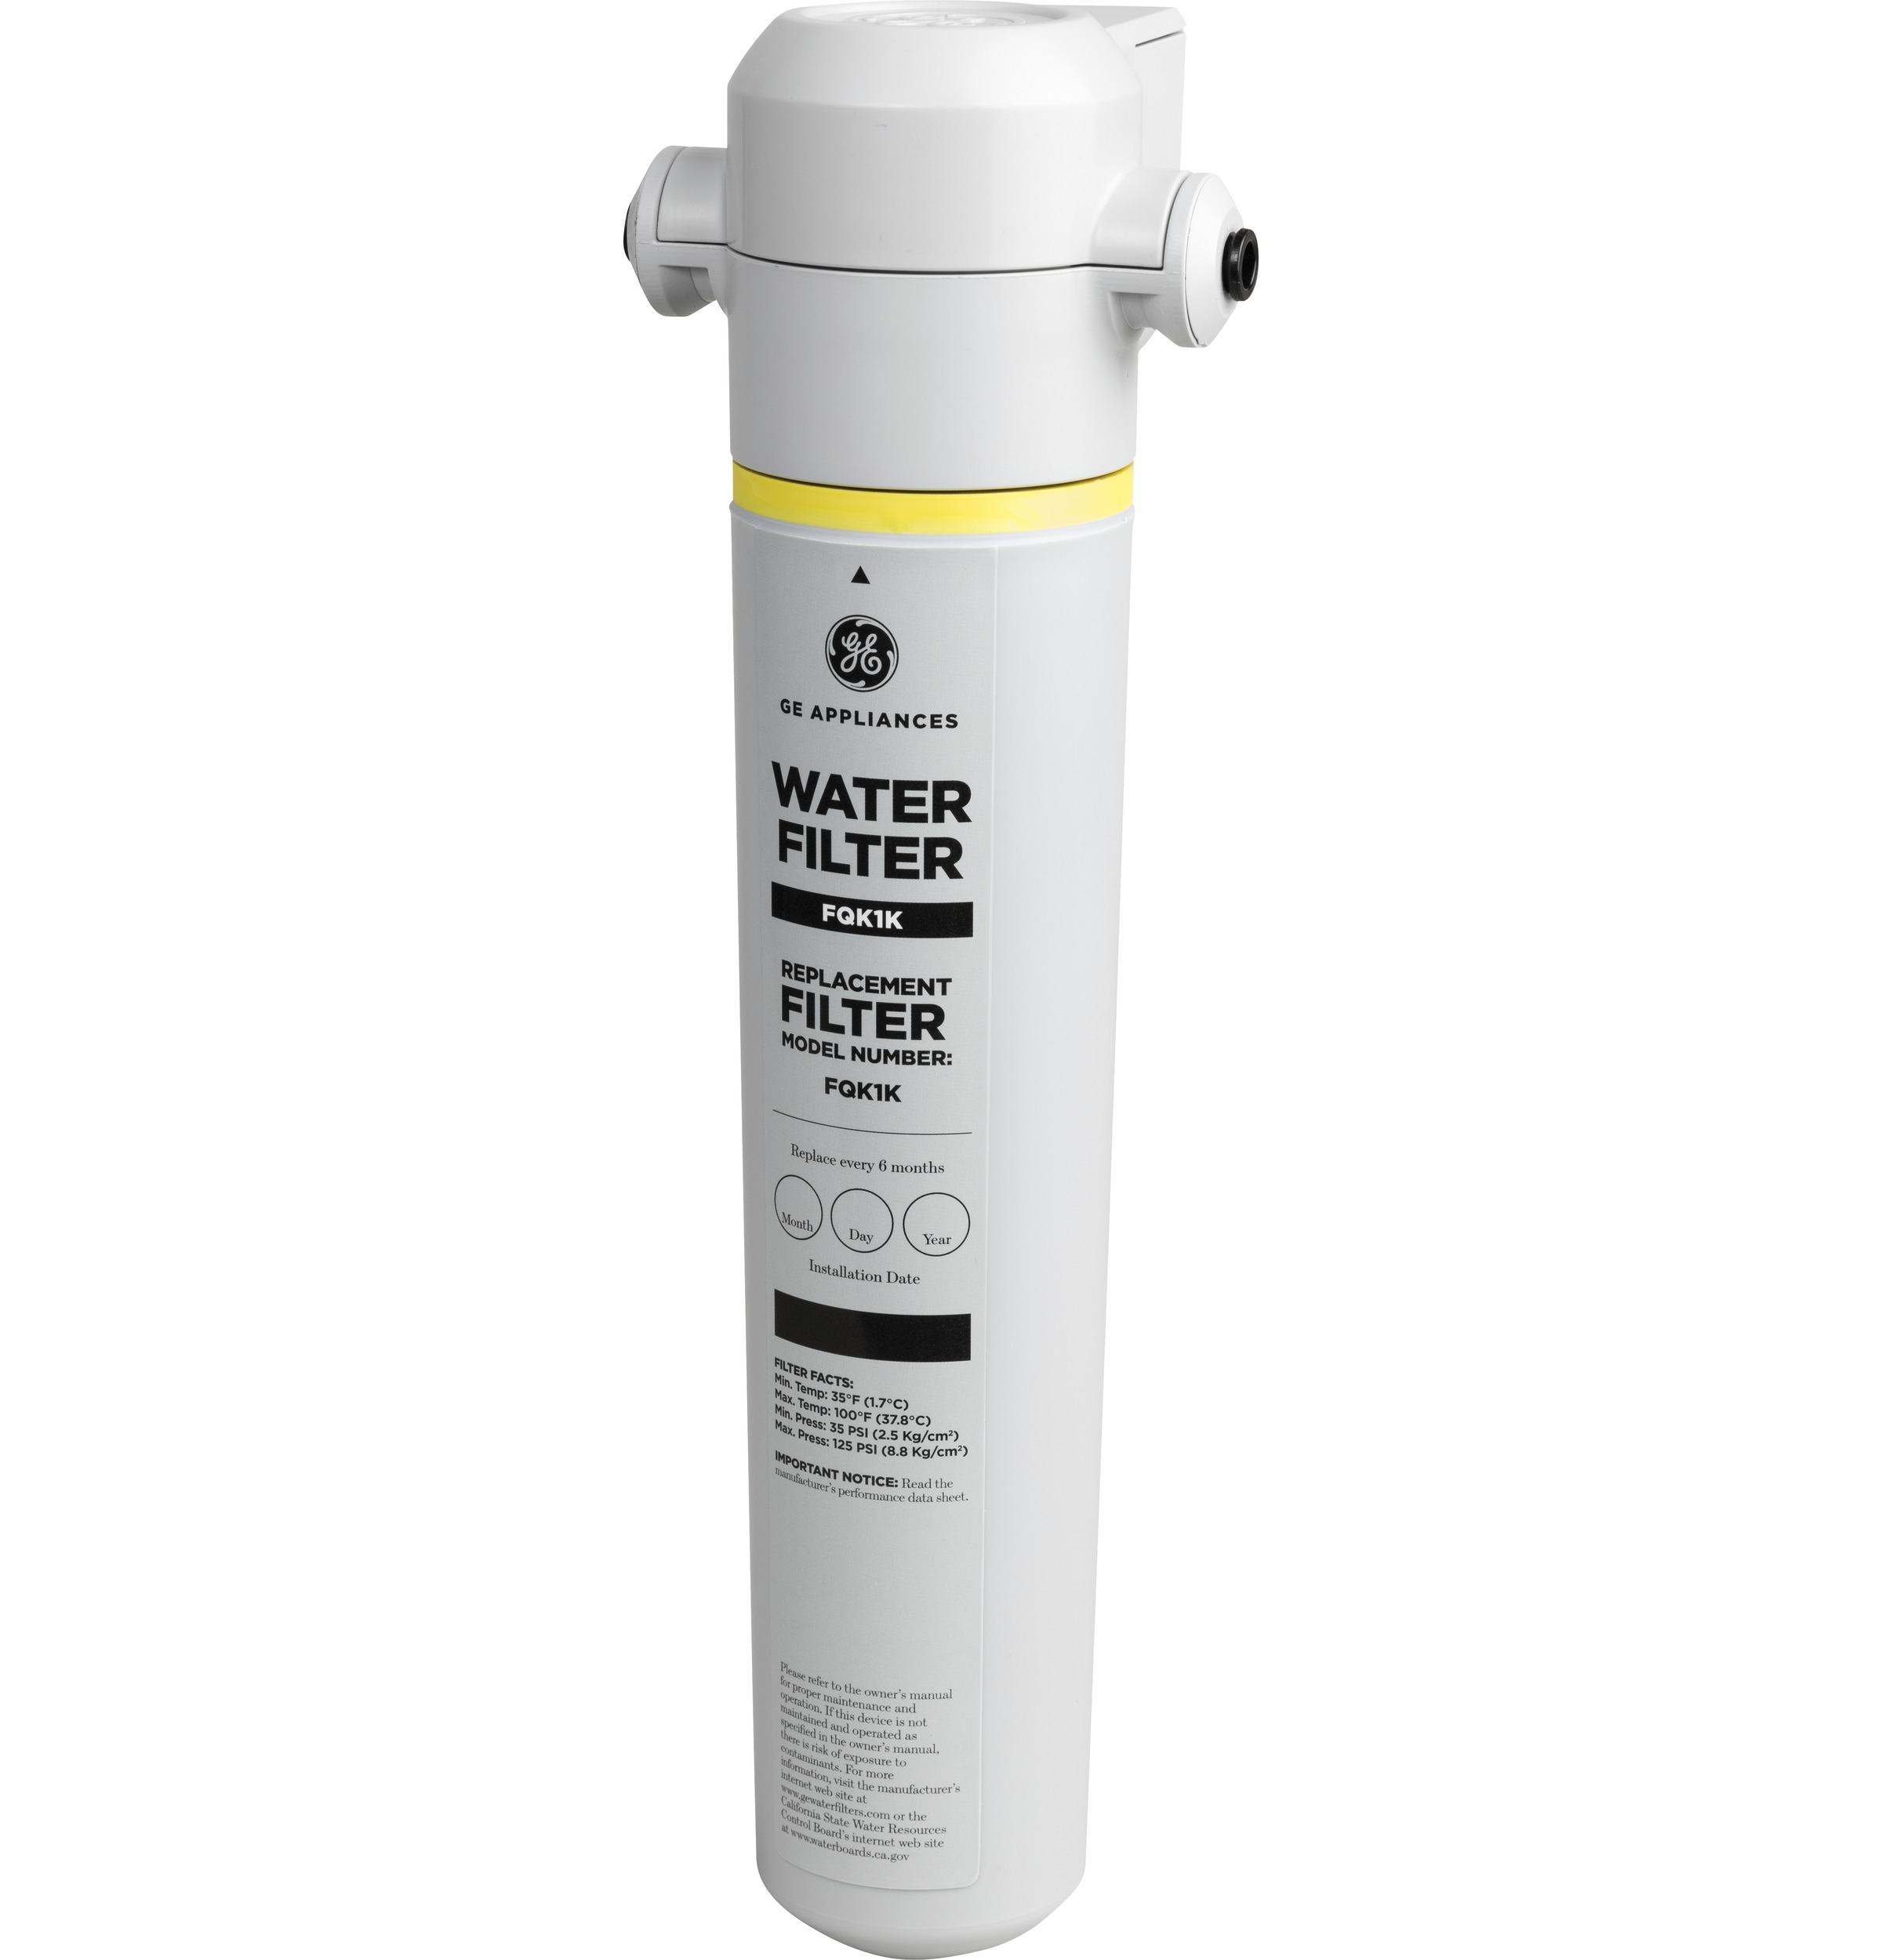 Gxrlqk In Line Water Filtration System For Refrigerators Or